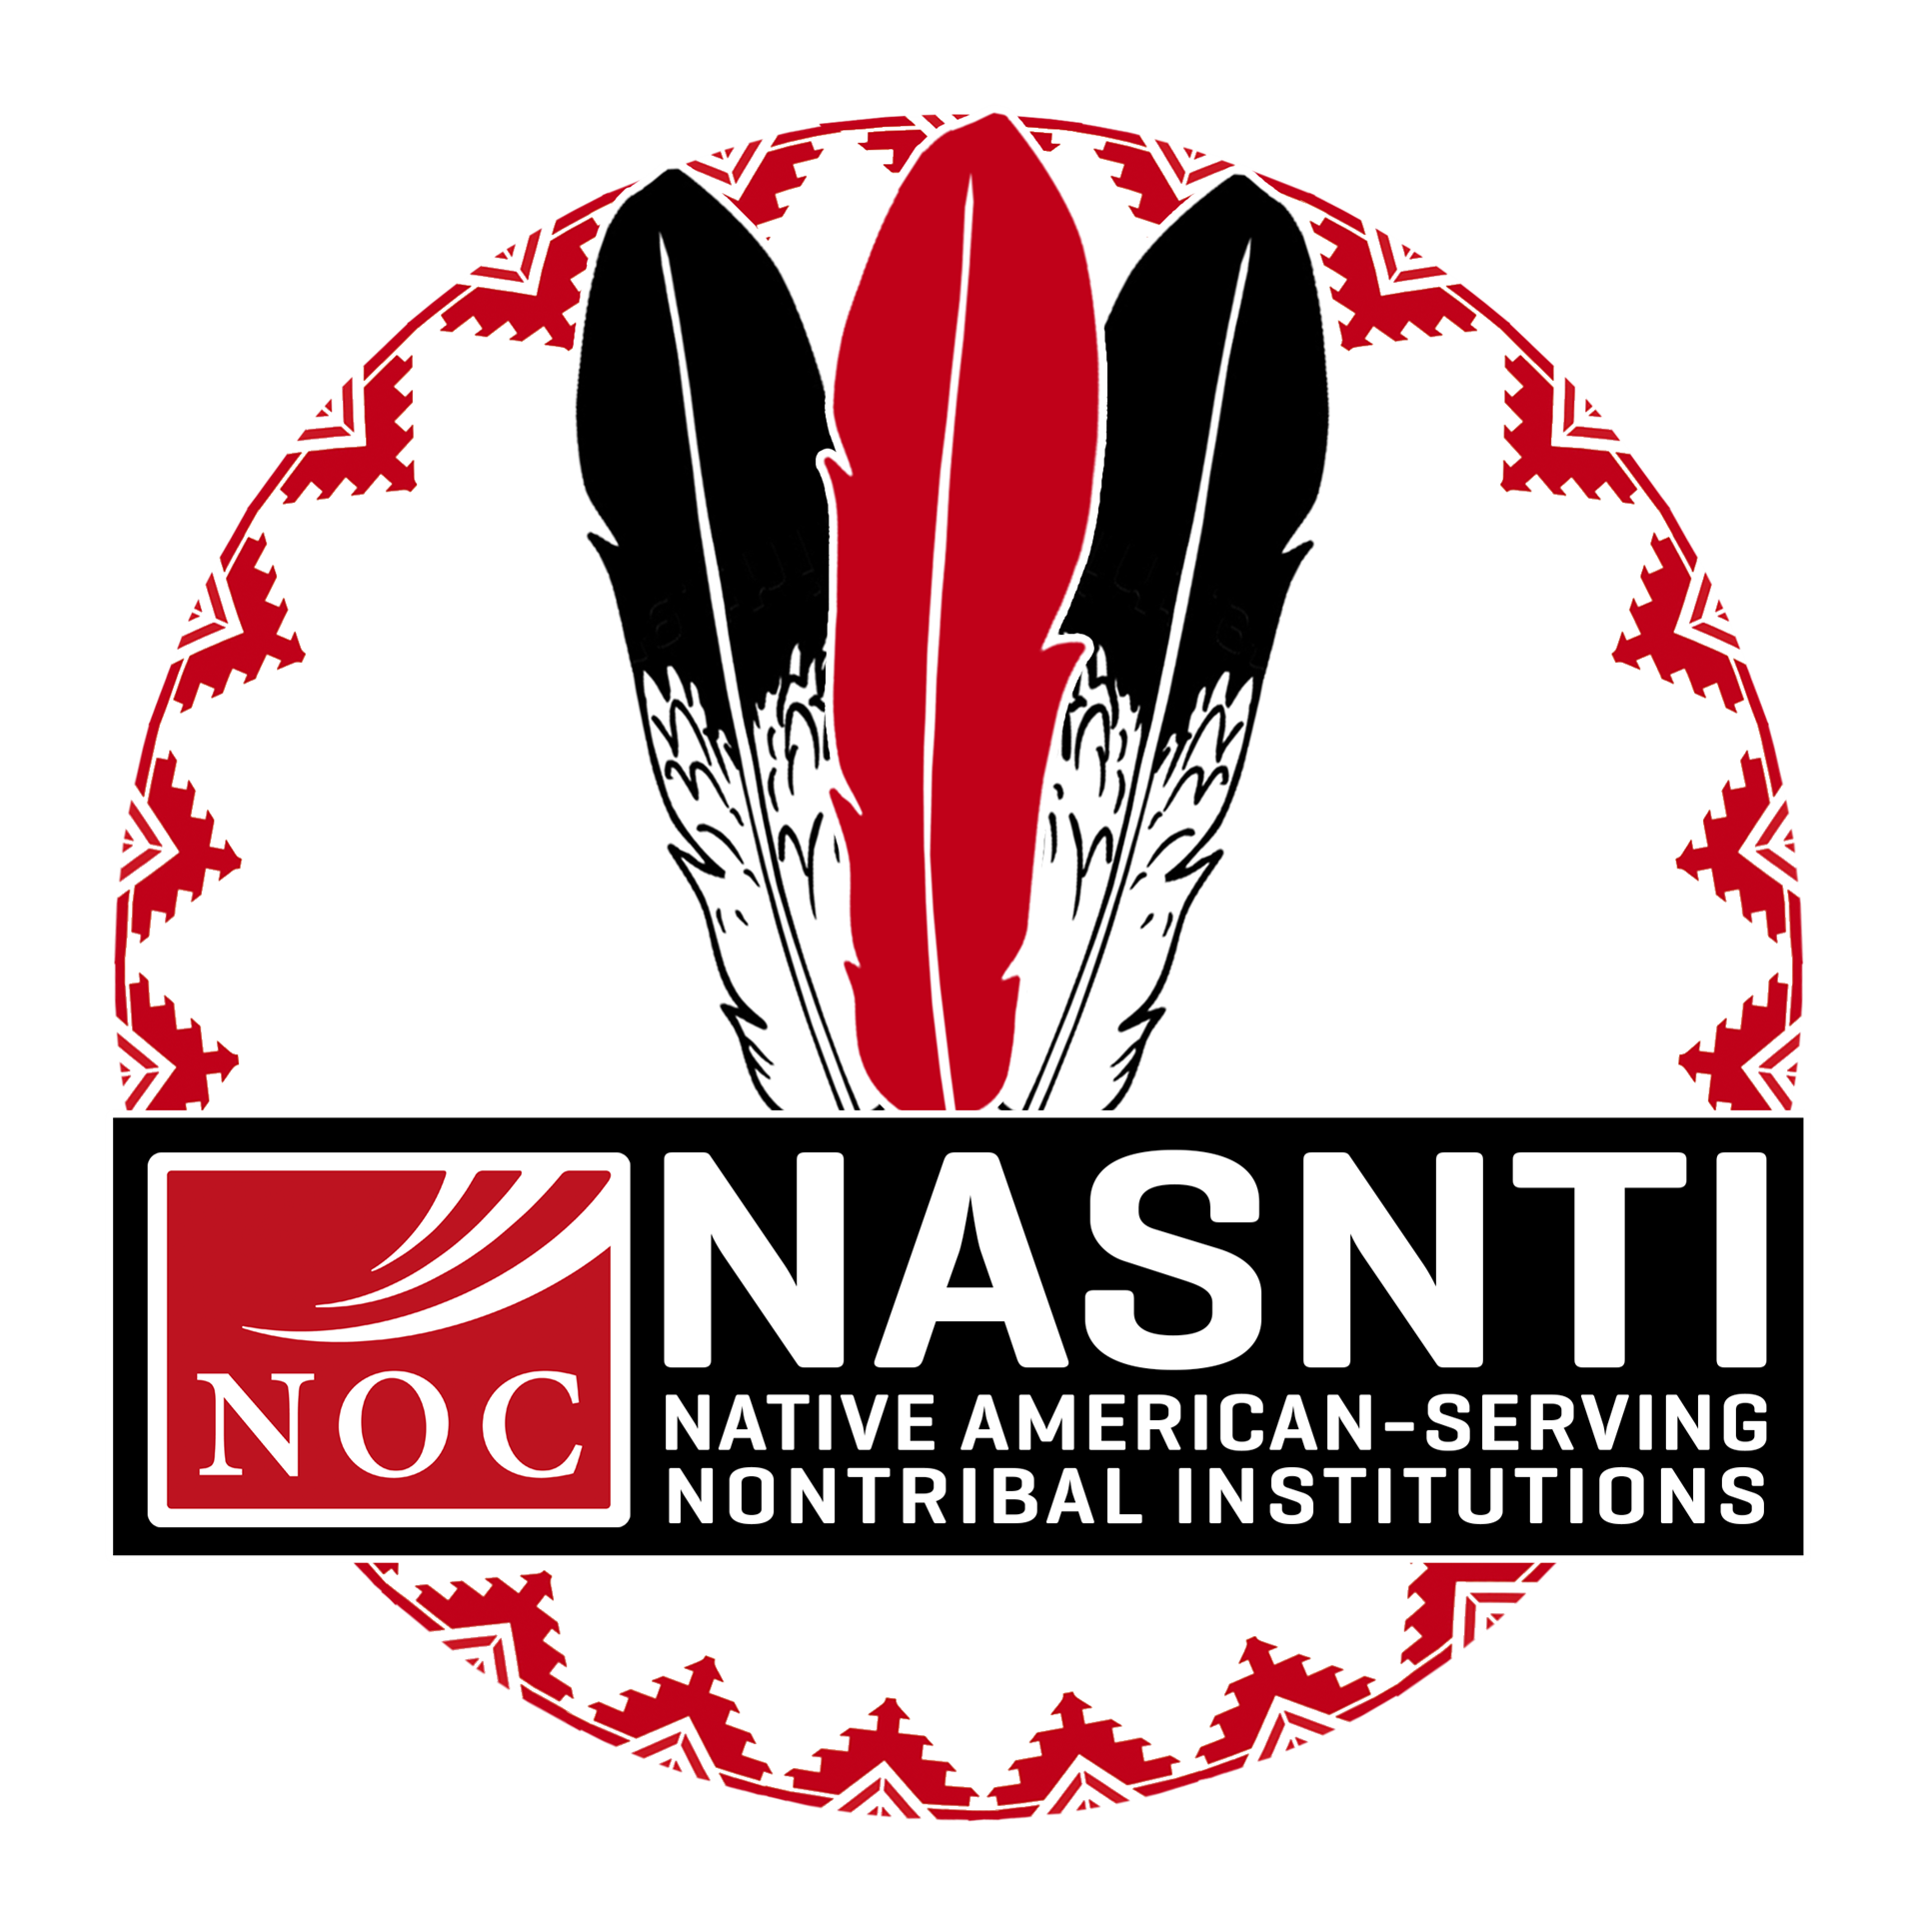 NOC earns NASNTI supplemental grant